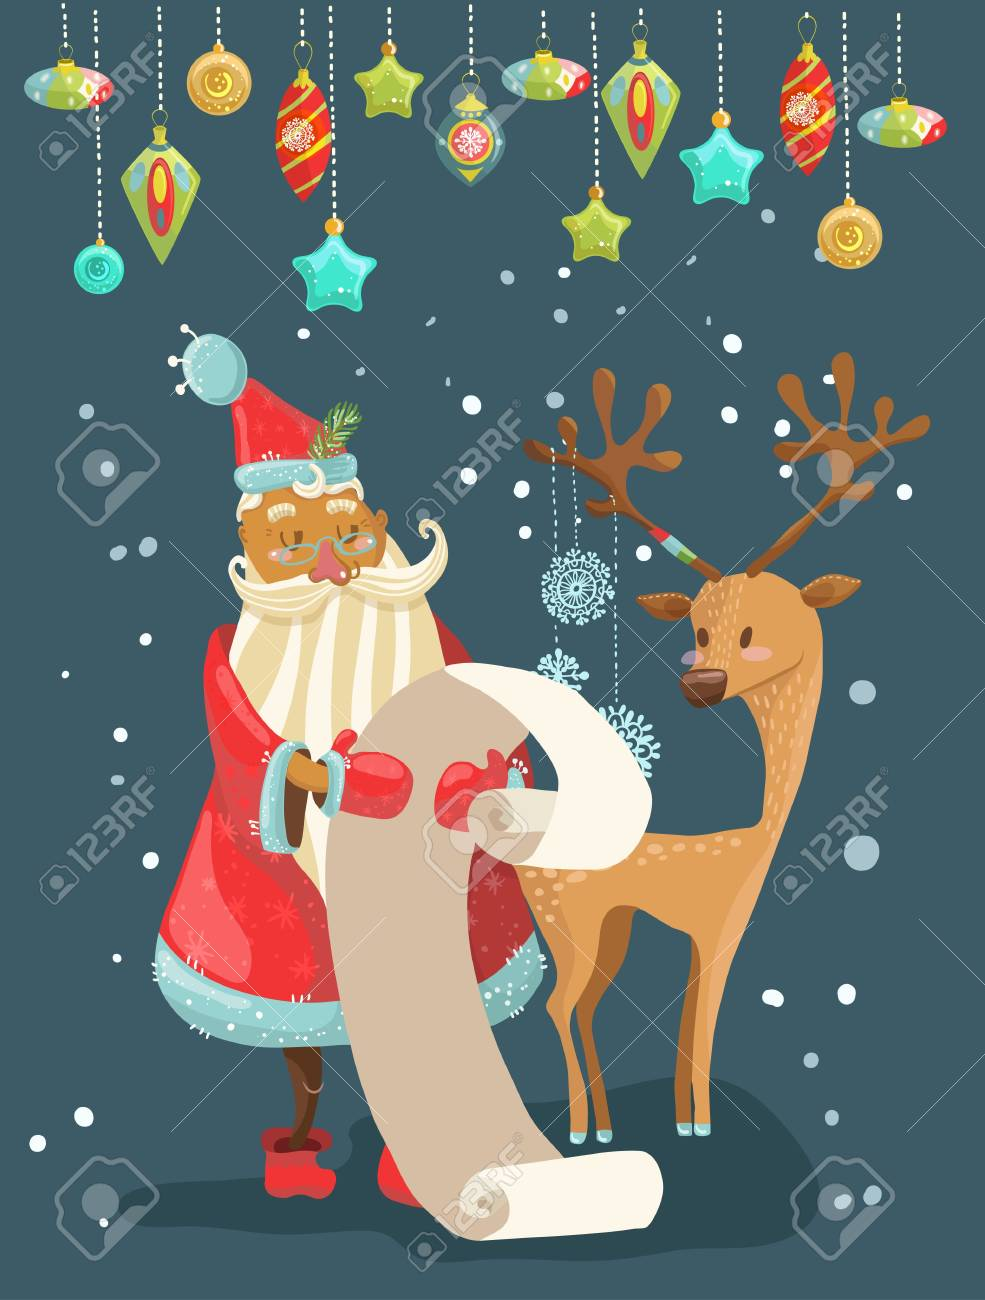 Christmas Wish.Santa Reading A Long Christmas Wish List With Deer Cute Illustration